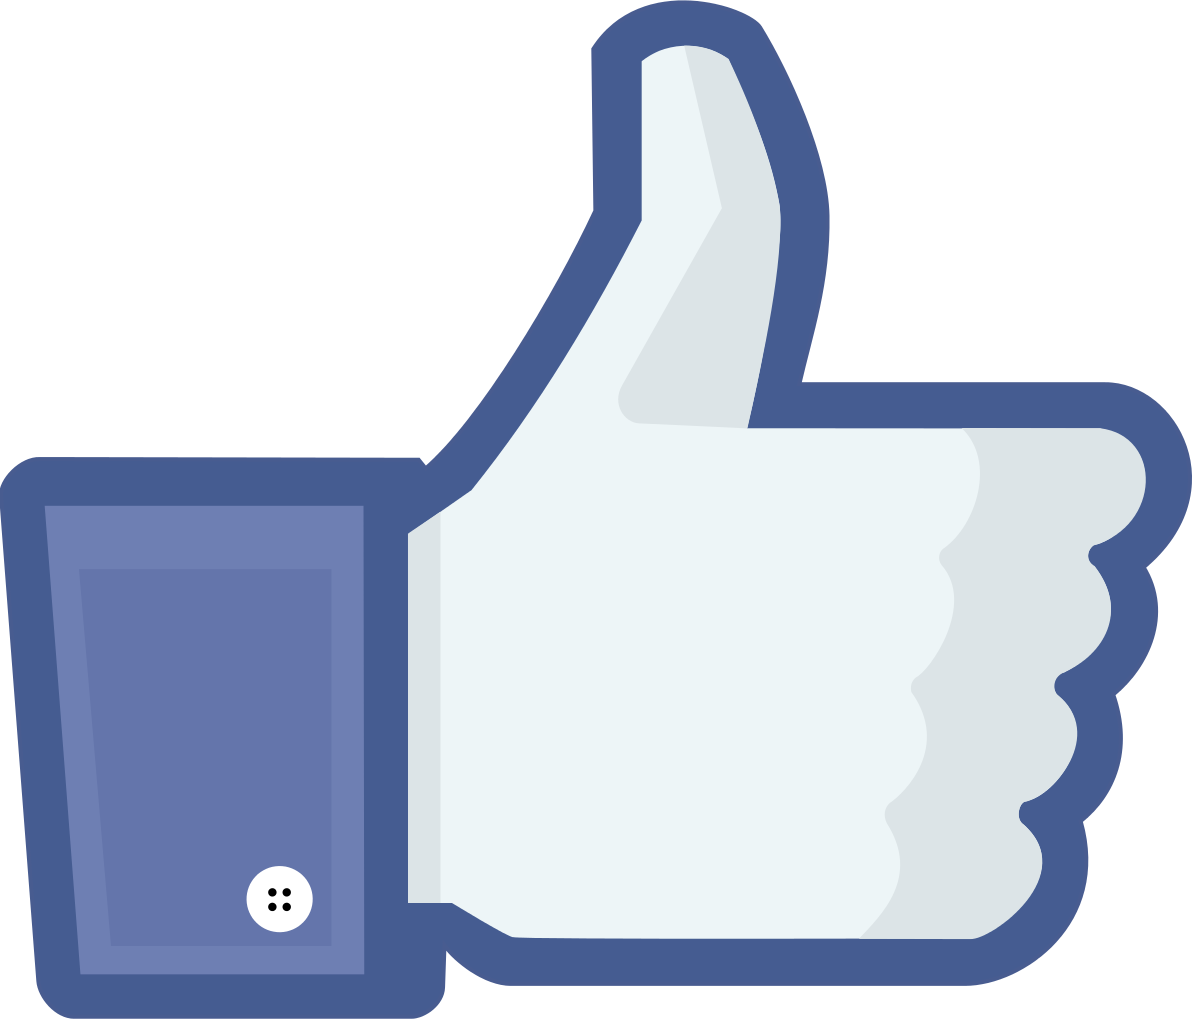 Clipart facebook like button graphic library download Facebook like button - Wikipedia graphic library download